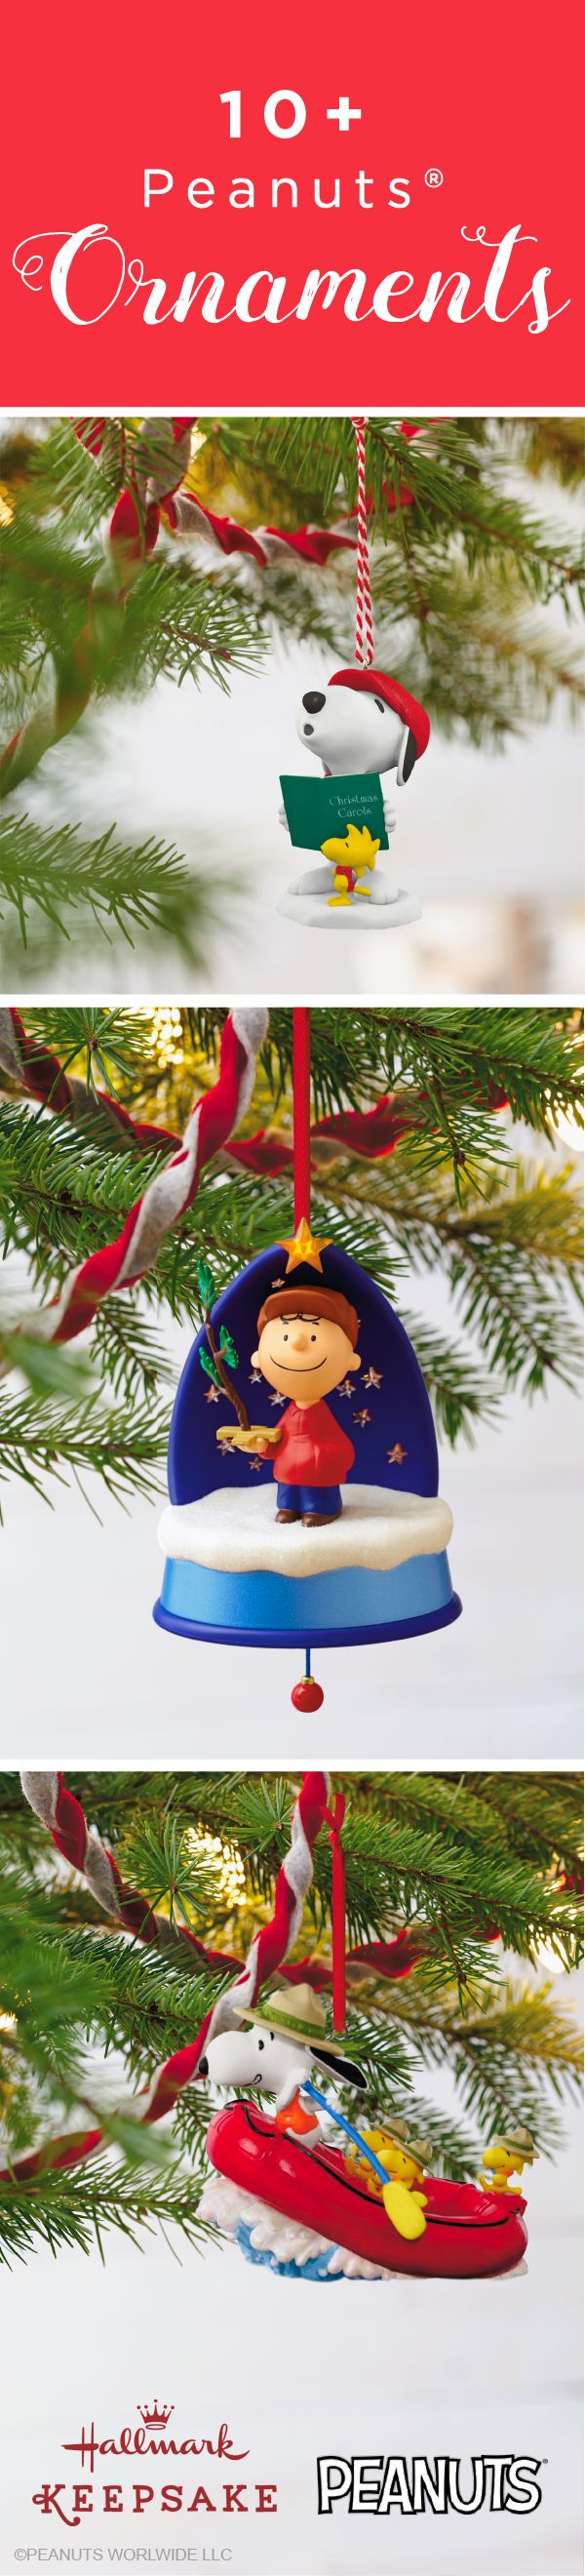 Celebrate this Christmas season with Charlie Brown and Snoopy! Hallmark Keepsake Ornaments offers a selection of your favorite Peanuts® characters to bring a touch of tradition to your Christmas tree decorations. Whether it's Snoopy gliding through the sky or Charlie Brown making a snow angel, you're bound to find the perfect ornament reminding you of holidays past and present. Shop online or at your nearest Hallmark Gold Crown store.